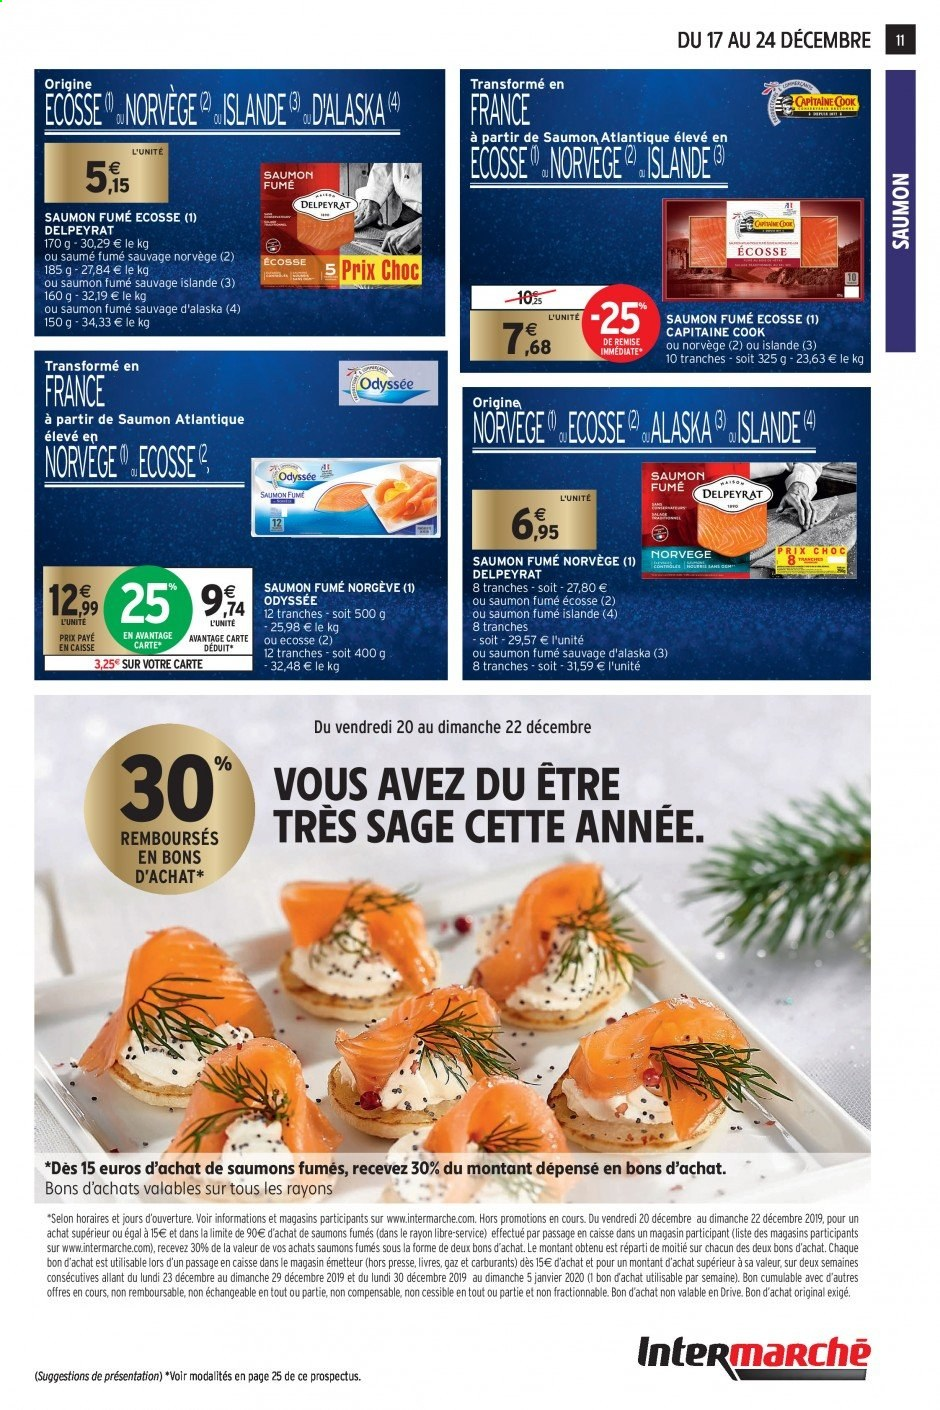 Catalogue Intermarché - 17.12.2019 - 24.12.2019. Page 11.